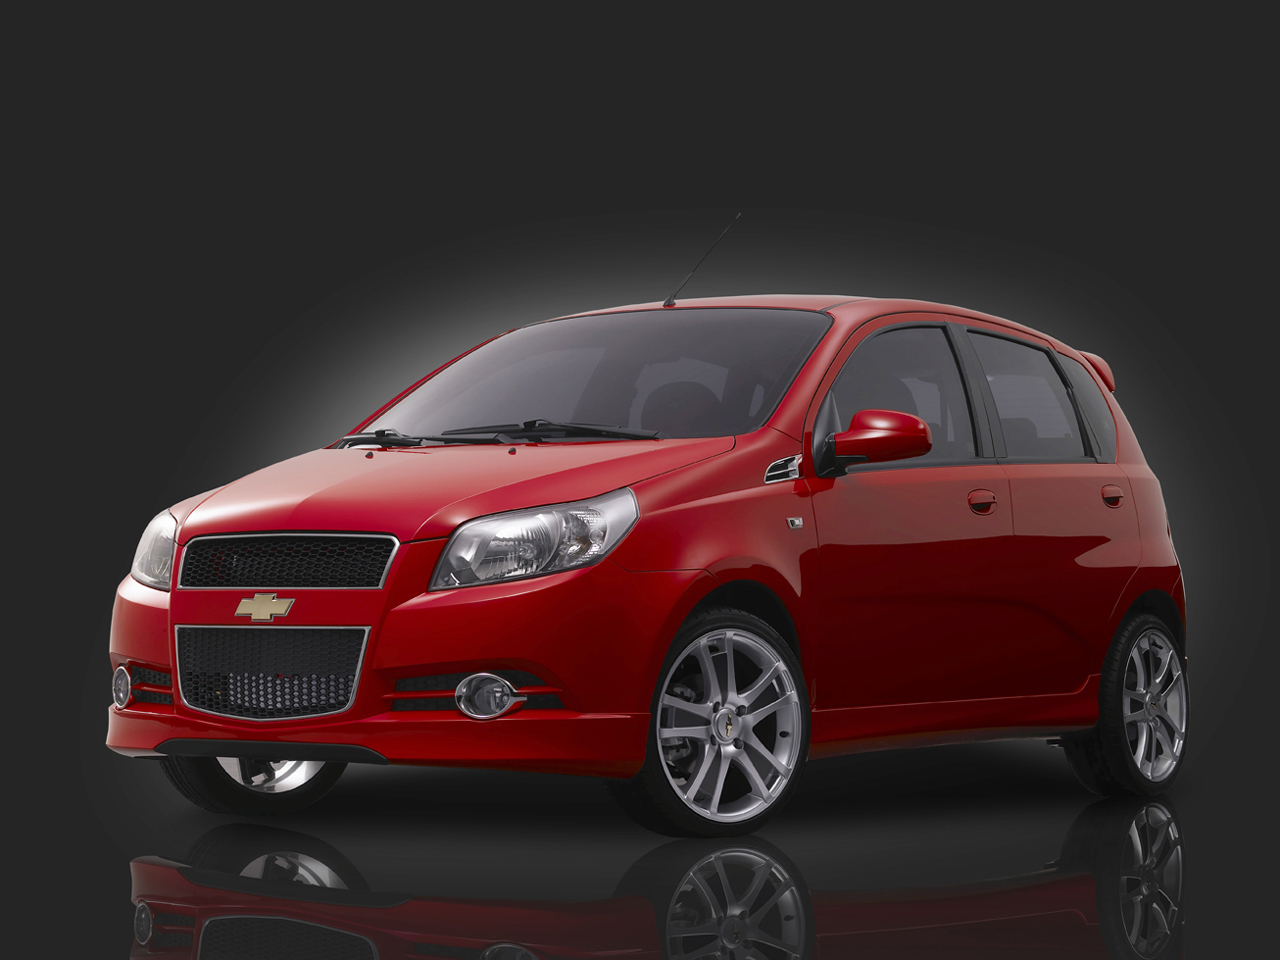 2009 chevrolet aveo information and photos zombiedrive. Black Bedroom Furniture Sets. Home Design Ideas